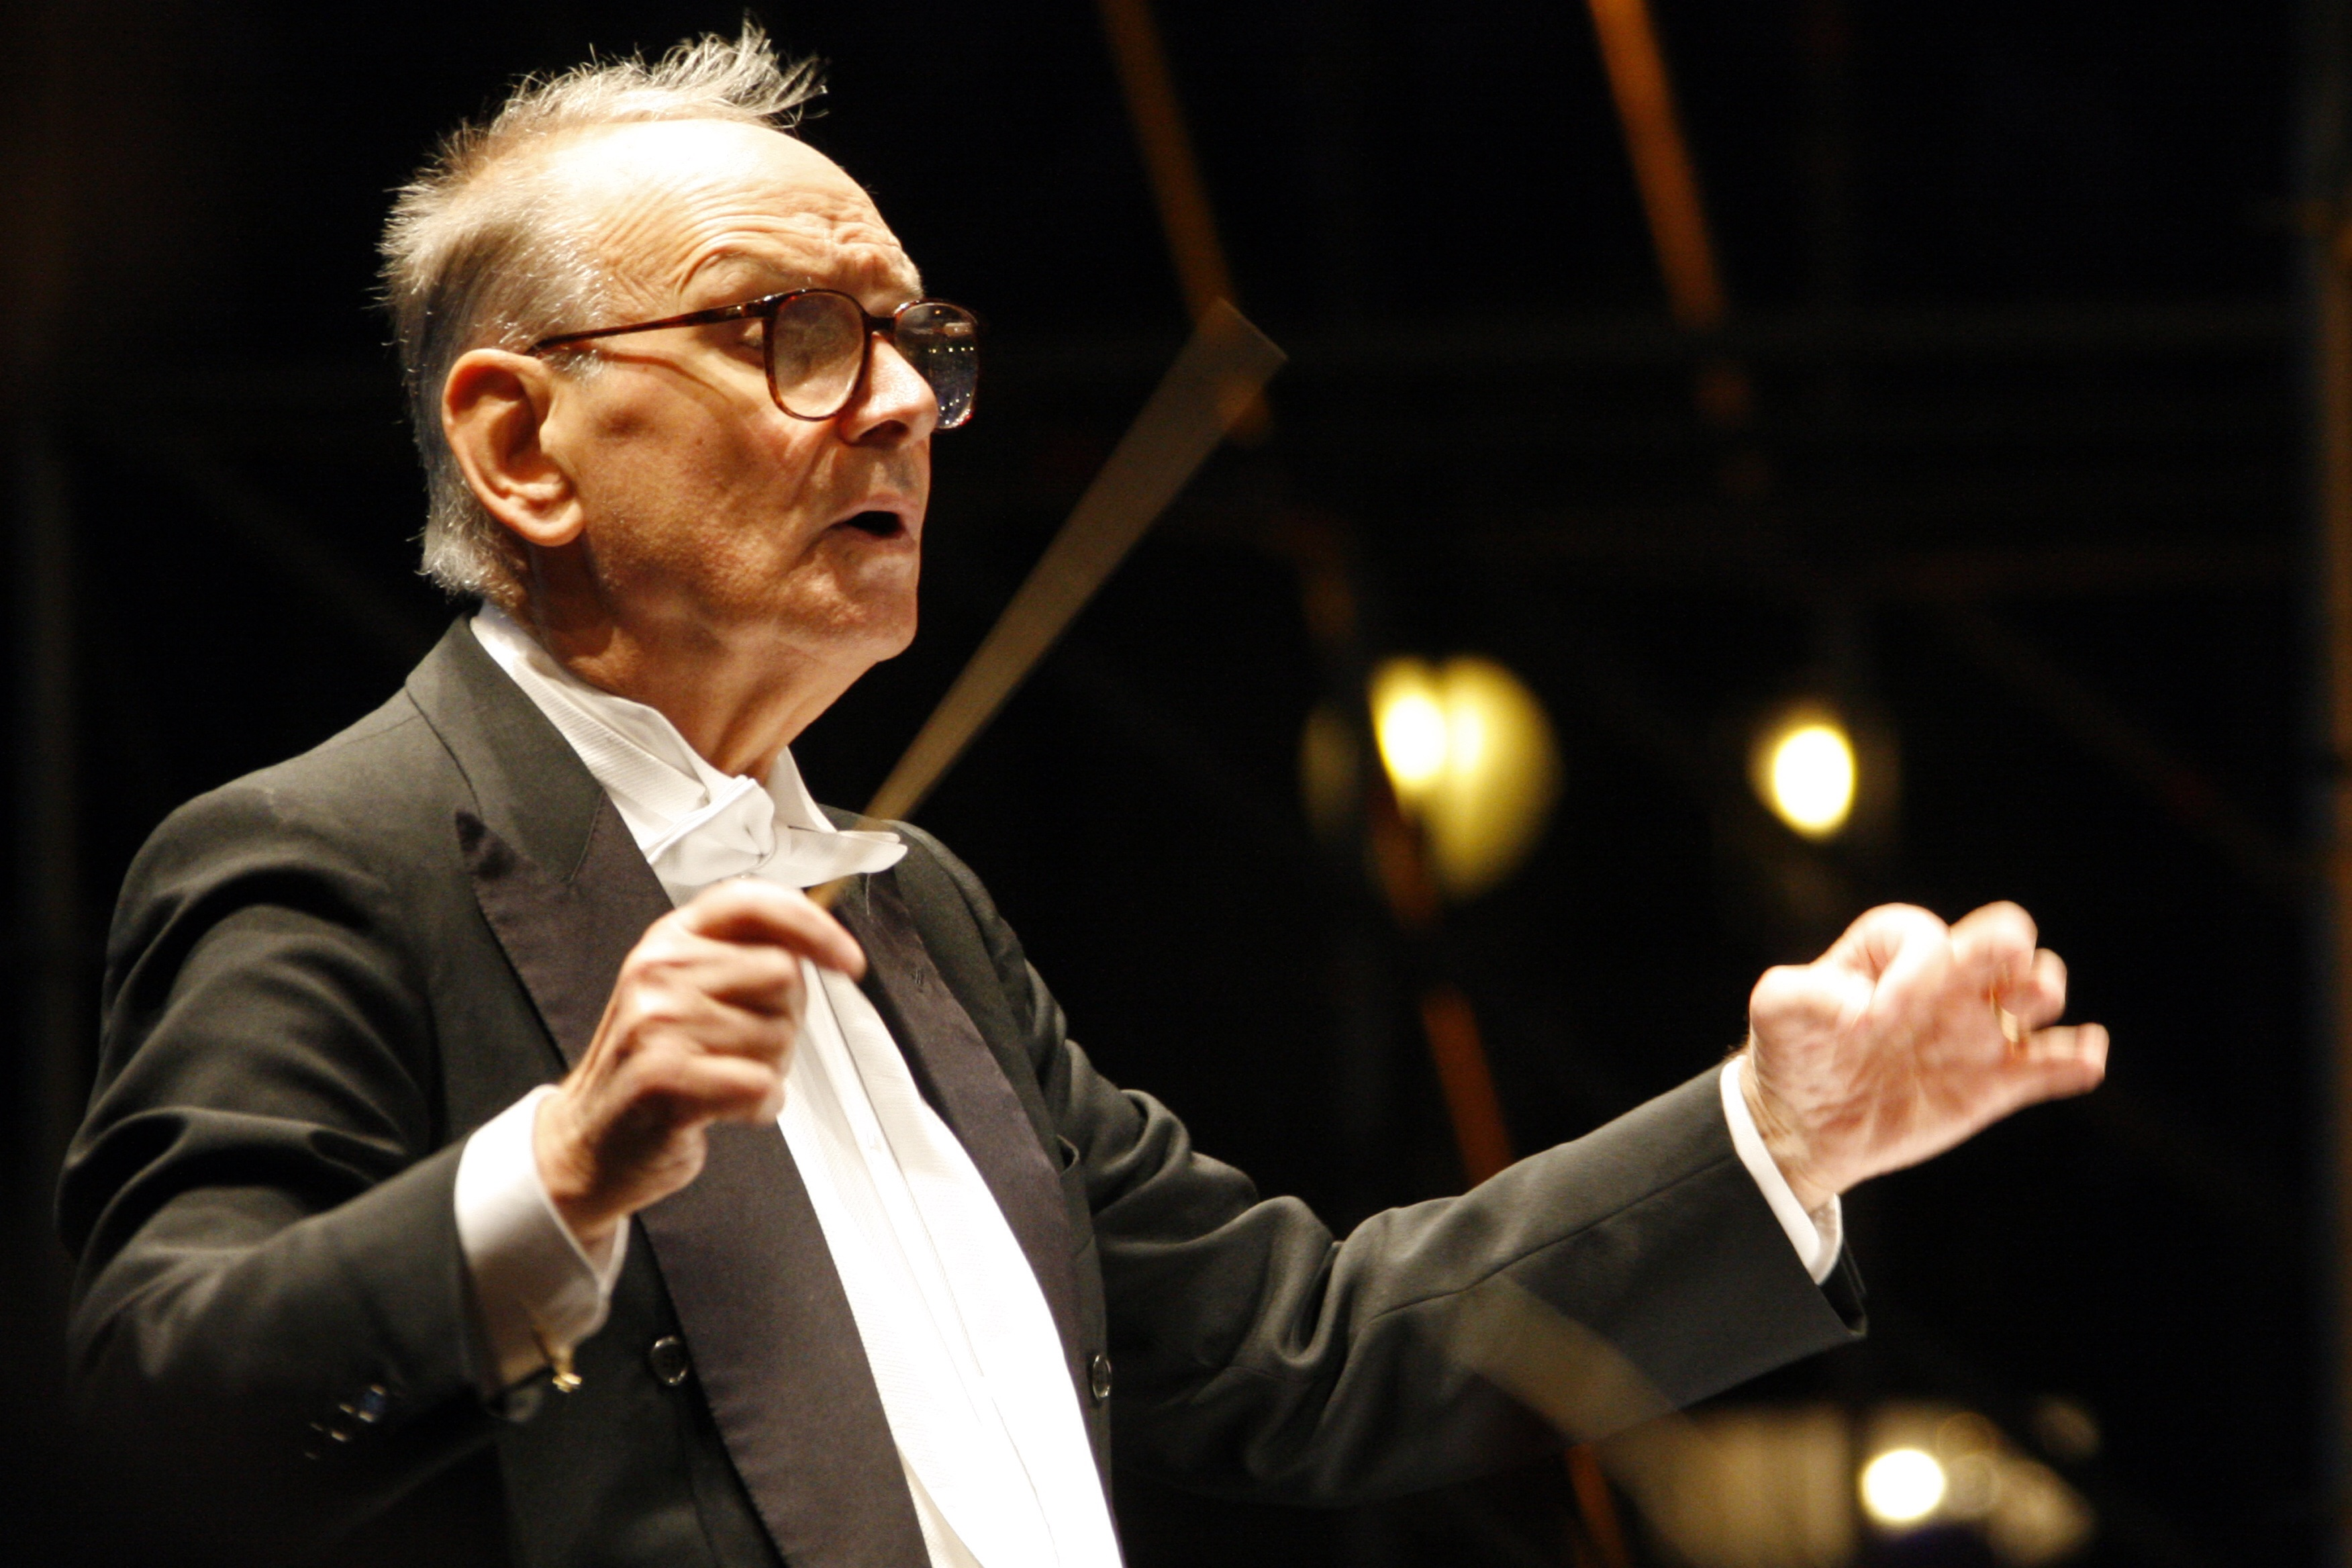 Ennio Morricone verzorgt soundtrack The Hateful Eight